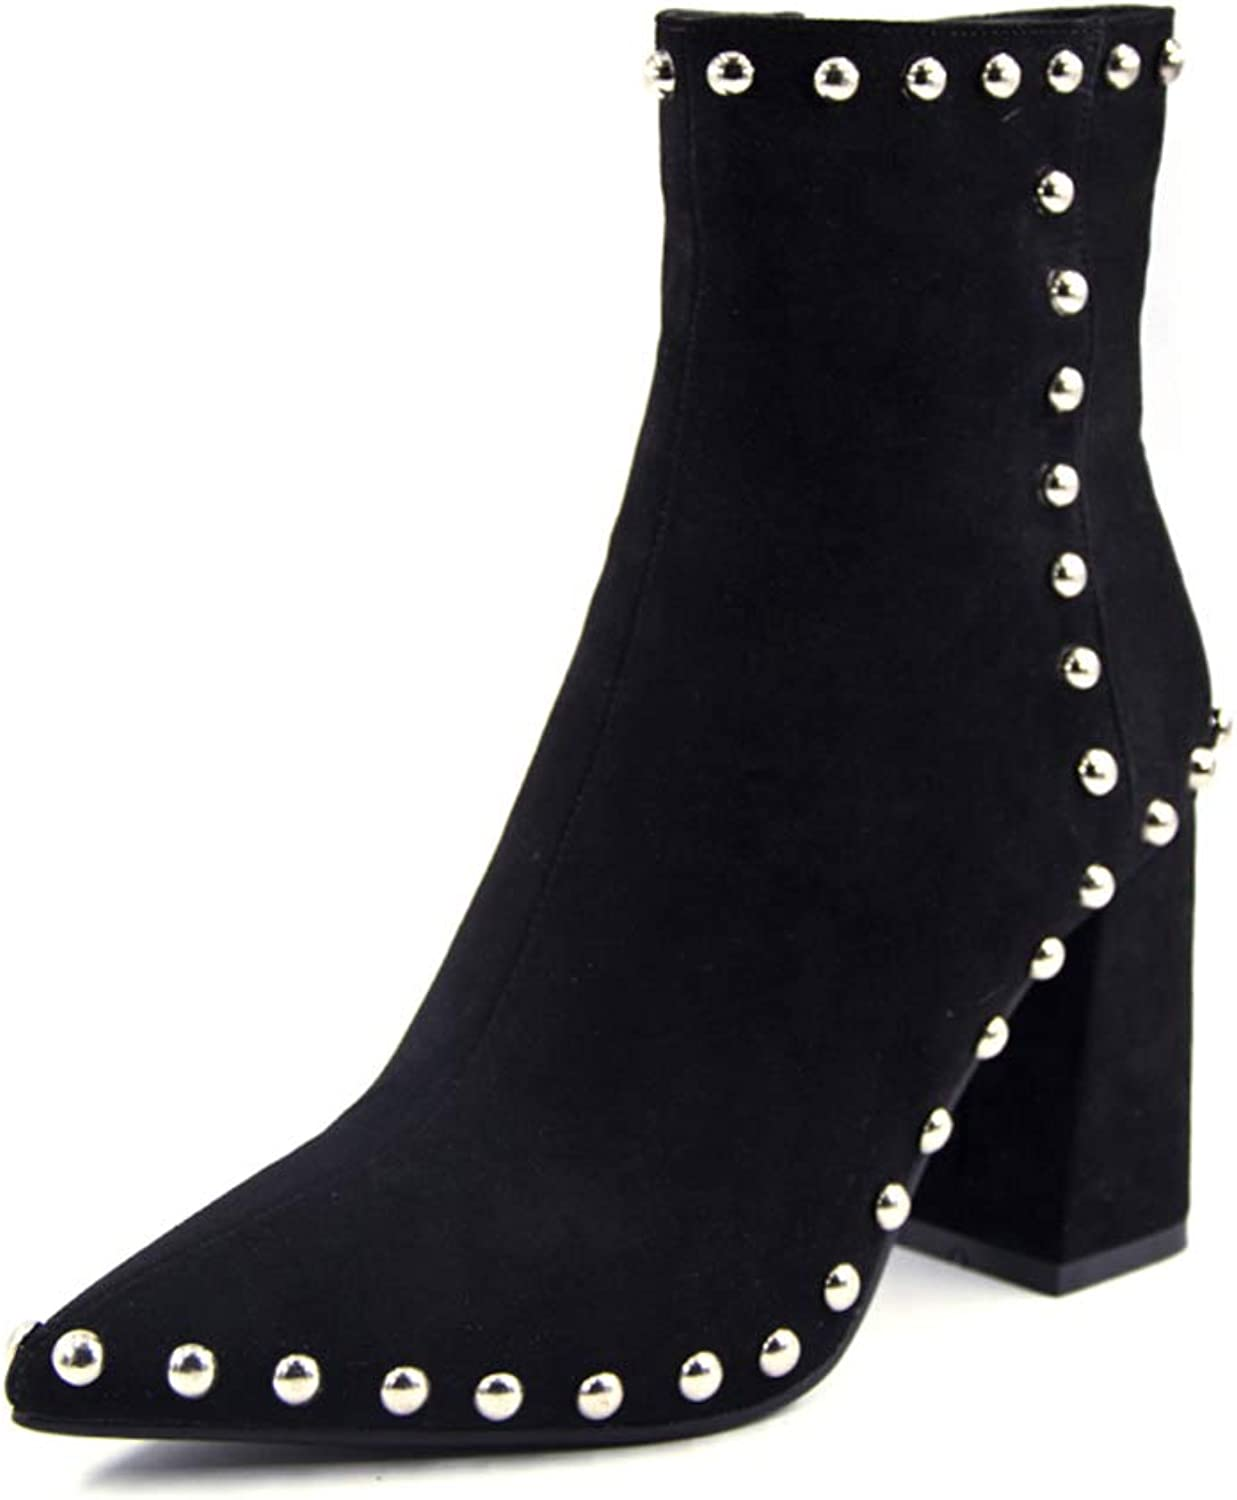 Zarbrina Womens Chunky Block Heel Platform Ankle Boots Ladies Fashion Beaded Sexy Round Toe Rubber Sole Zipper Up Slip On Party Dress shoes